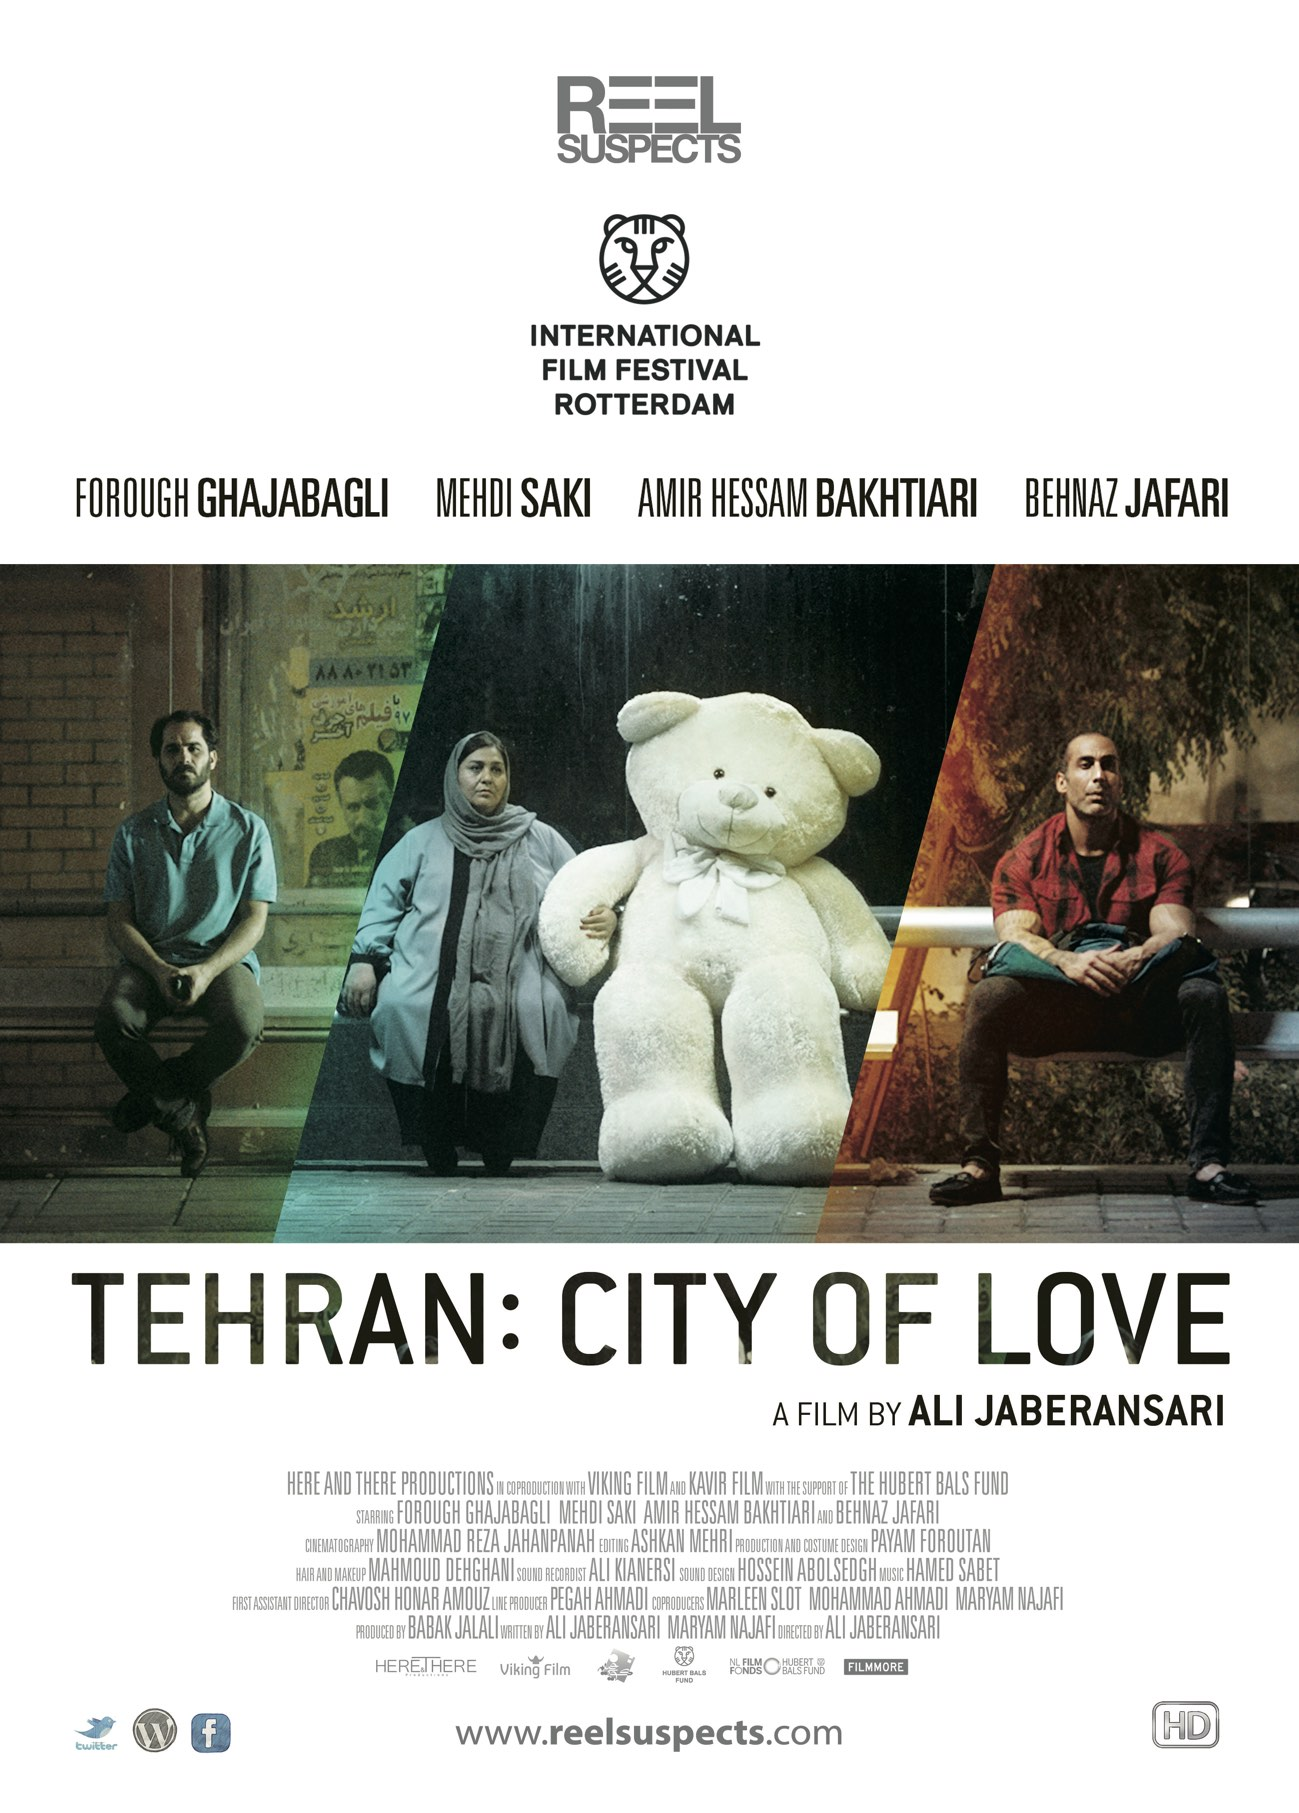 TEHRAN: CITY OF LOVE